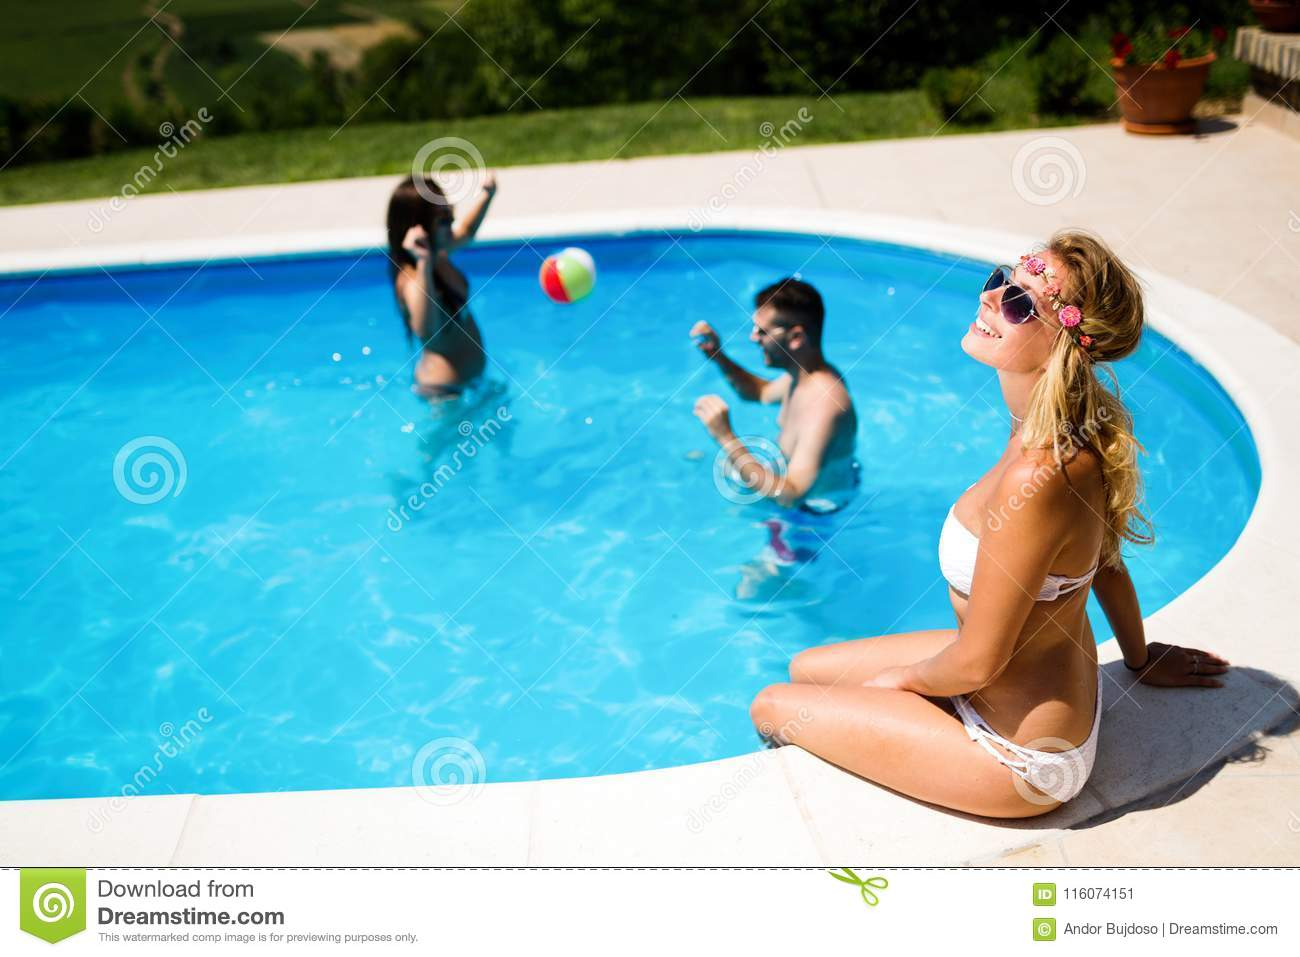 Friends Playing Ball Games In Pool Stock Image - Image of play ...